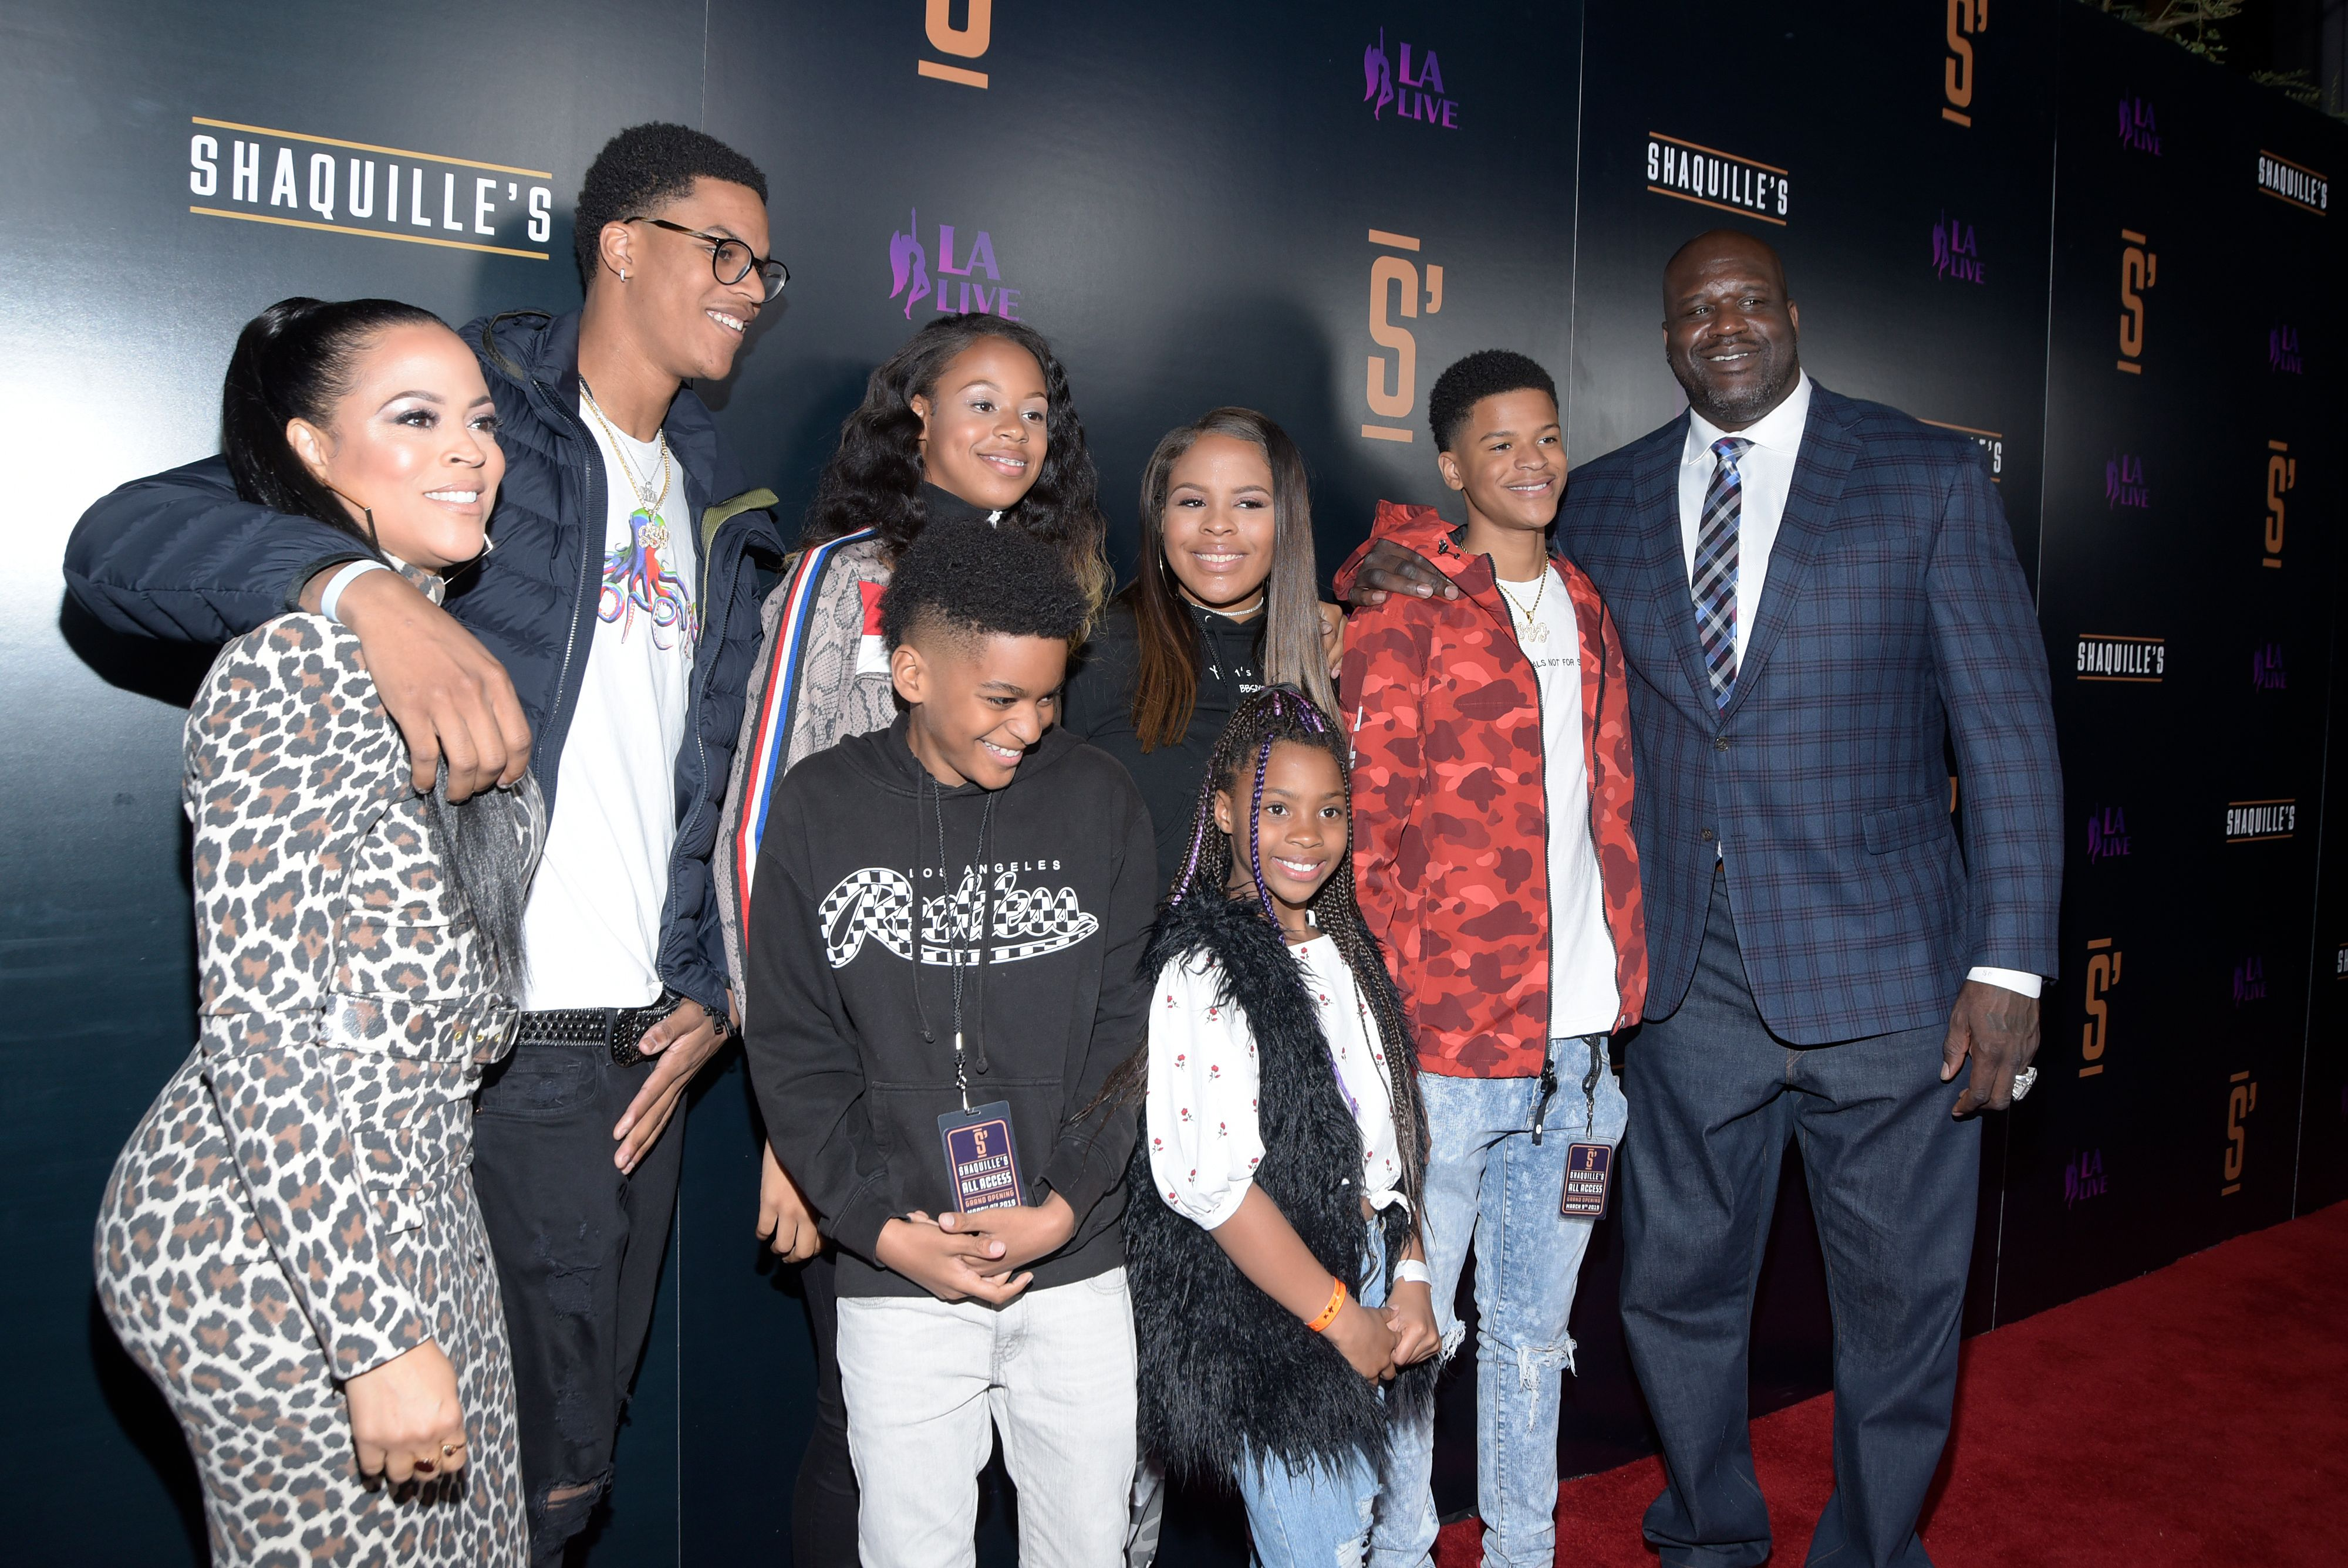 Shaunie O'Neal and Shaquille O'Neal and their family pose on the red carpet at the opening of Shaquille's At L.A. Live on March 09, 2019, in Los Angeles, California | Source: Michael Tullberg/Getty Images